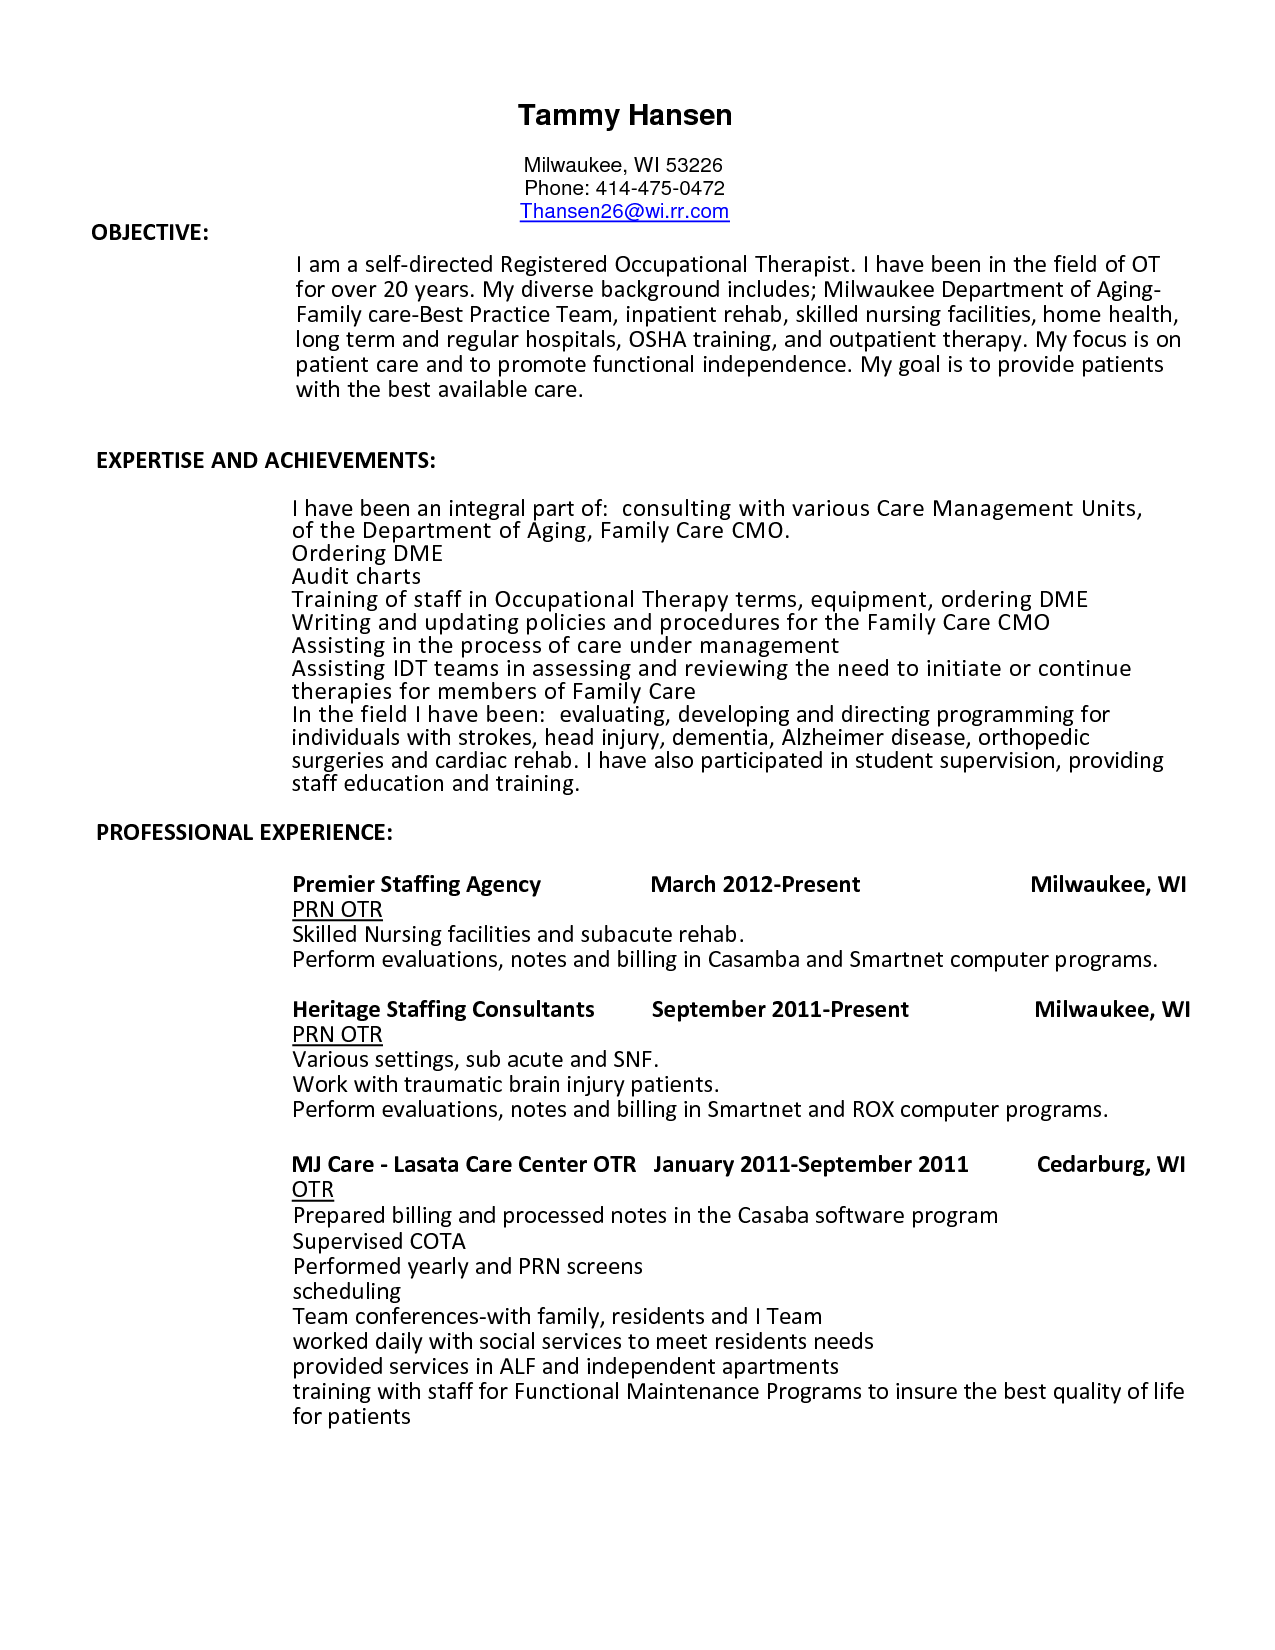 Occupational Therapy Aide Sample Resume Cota L  Resume Examples  Pinterest  Resume Examples